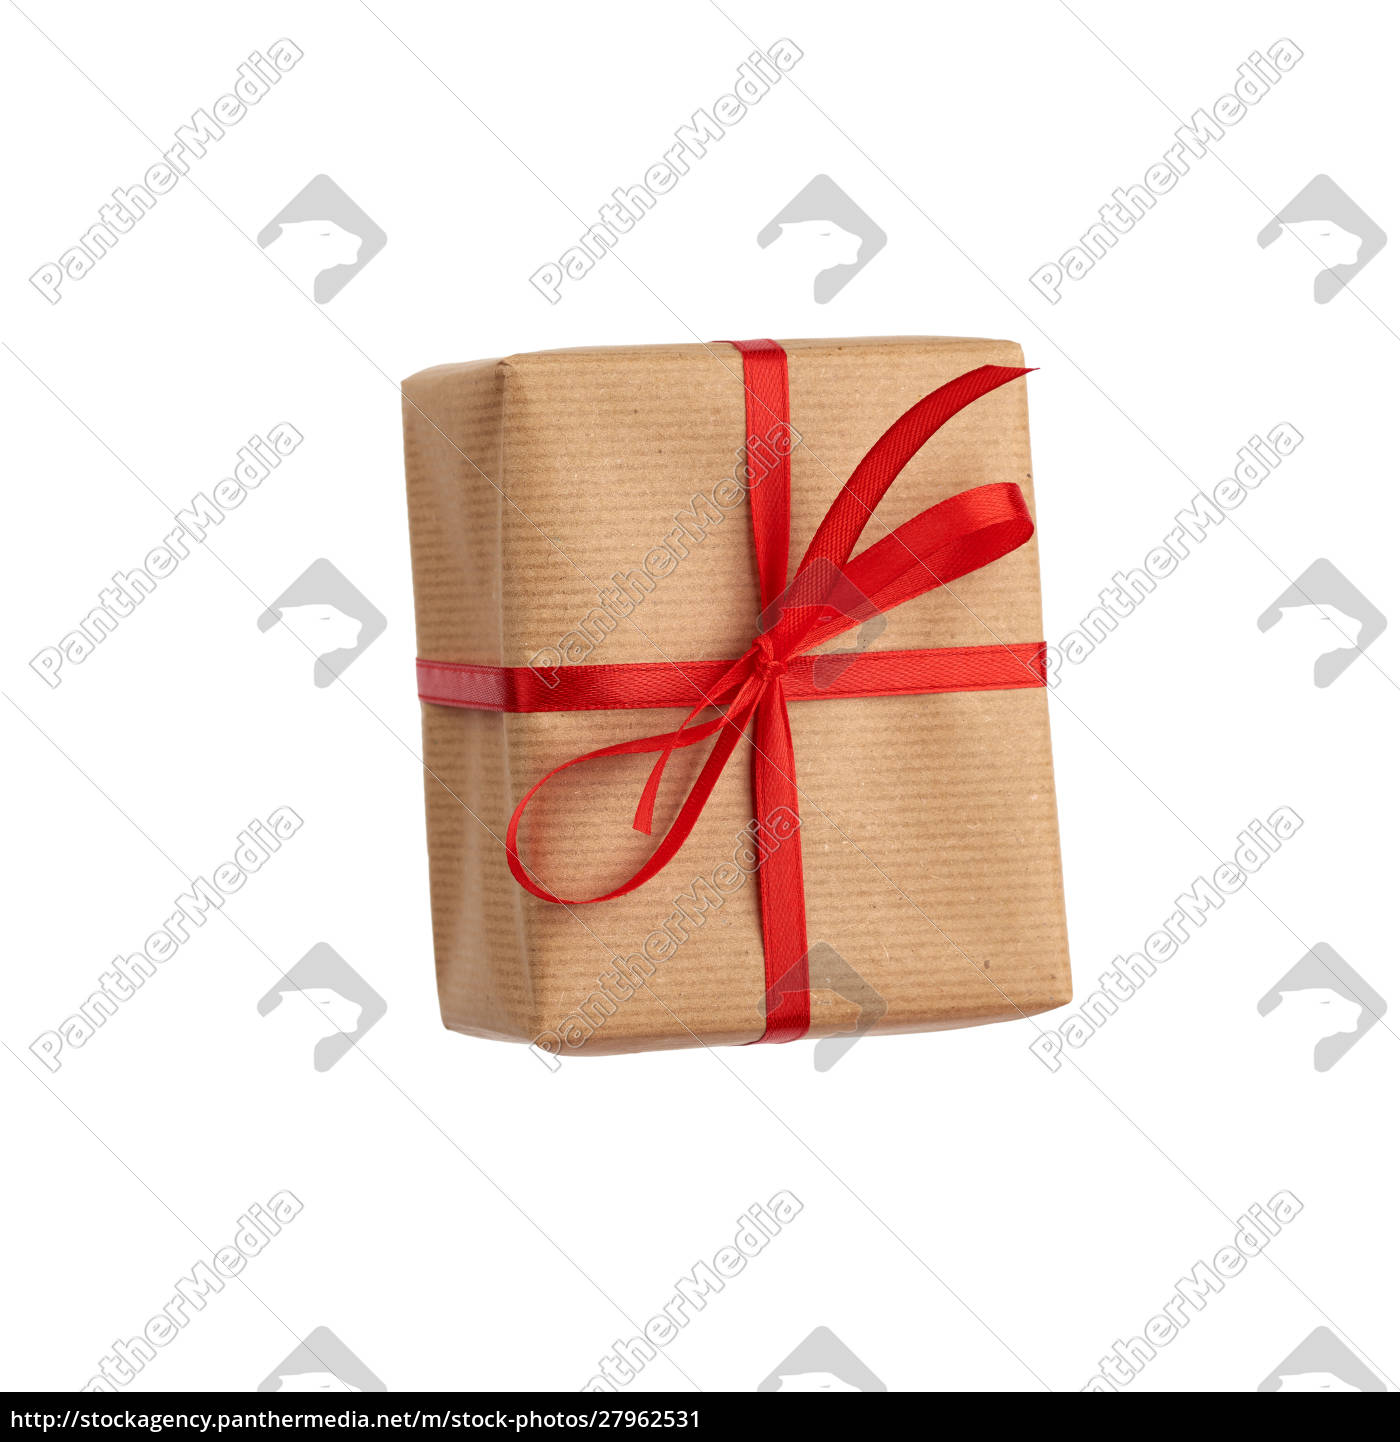 rectangular, box, wrapped, in, brown, paper - 27962531